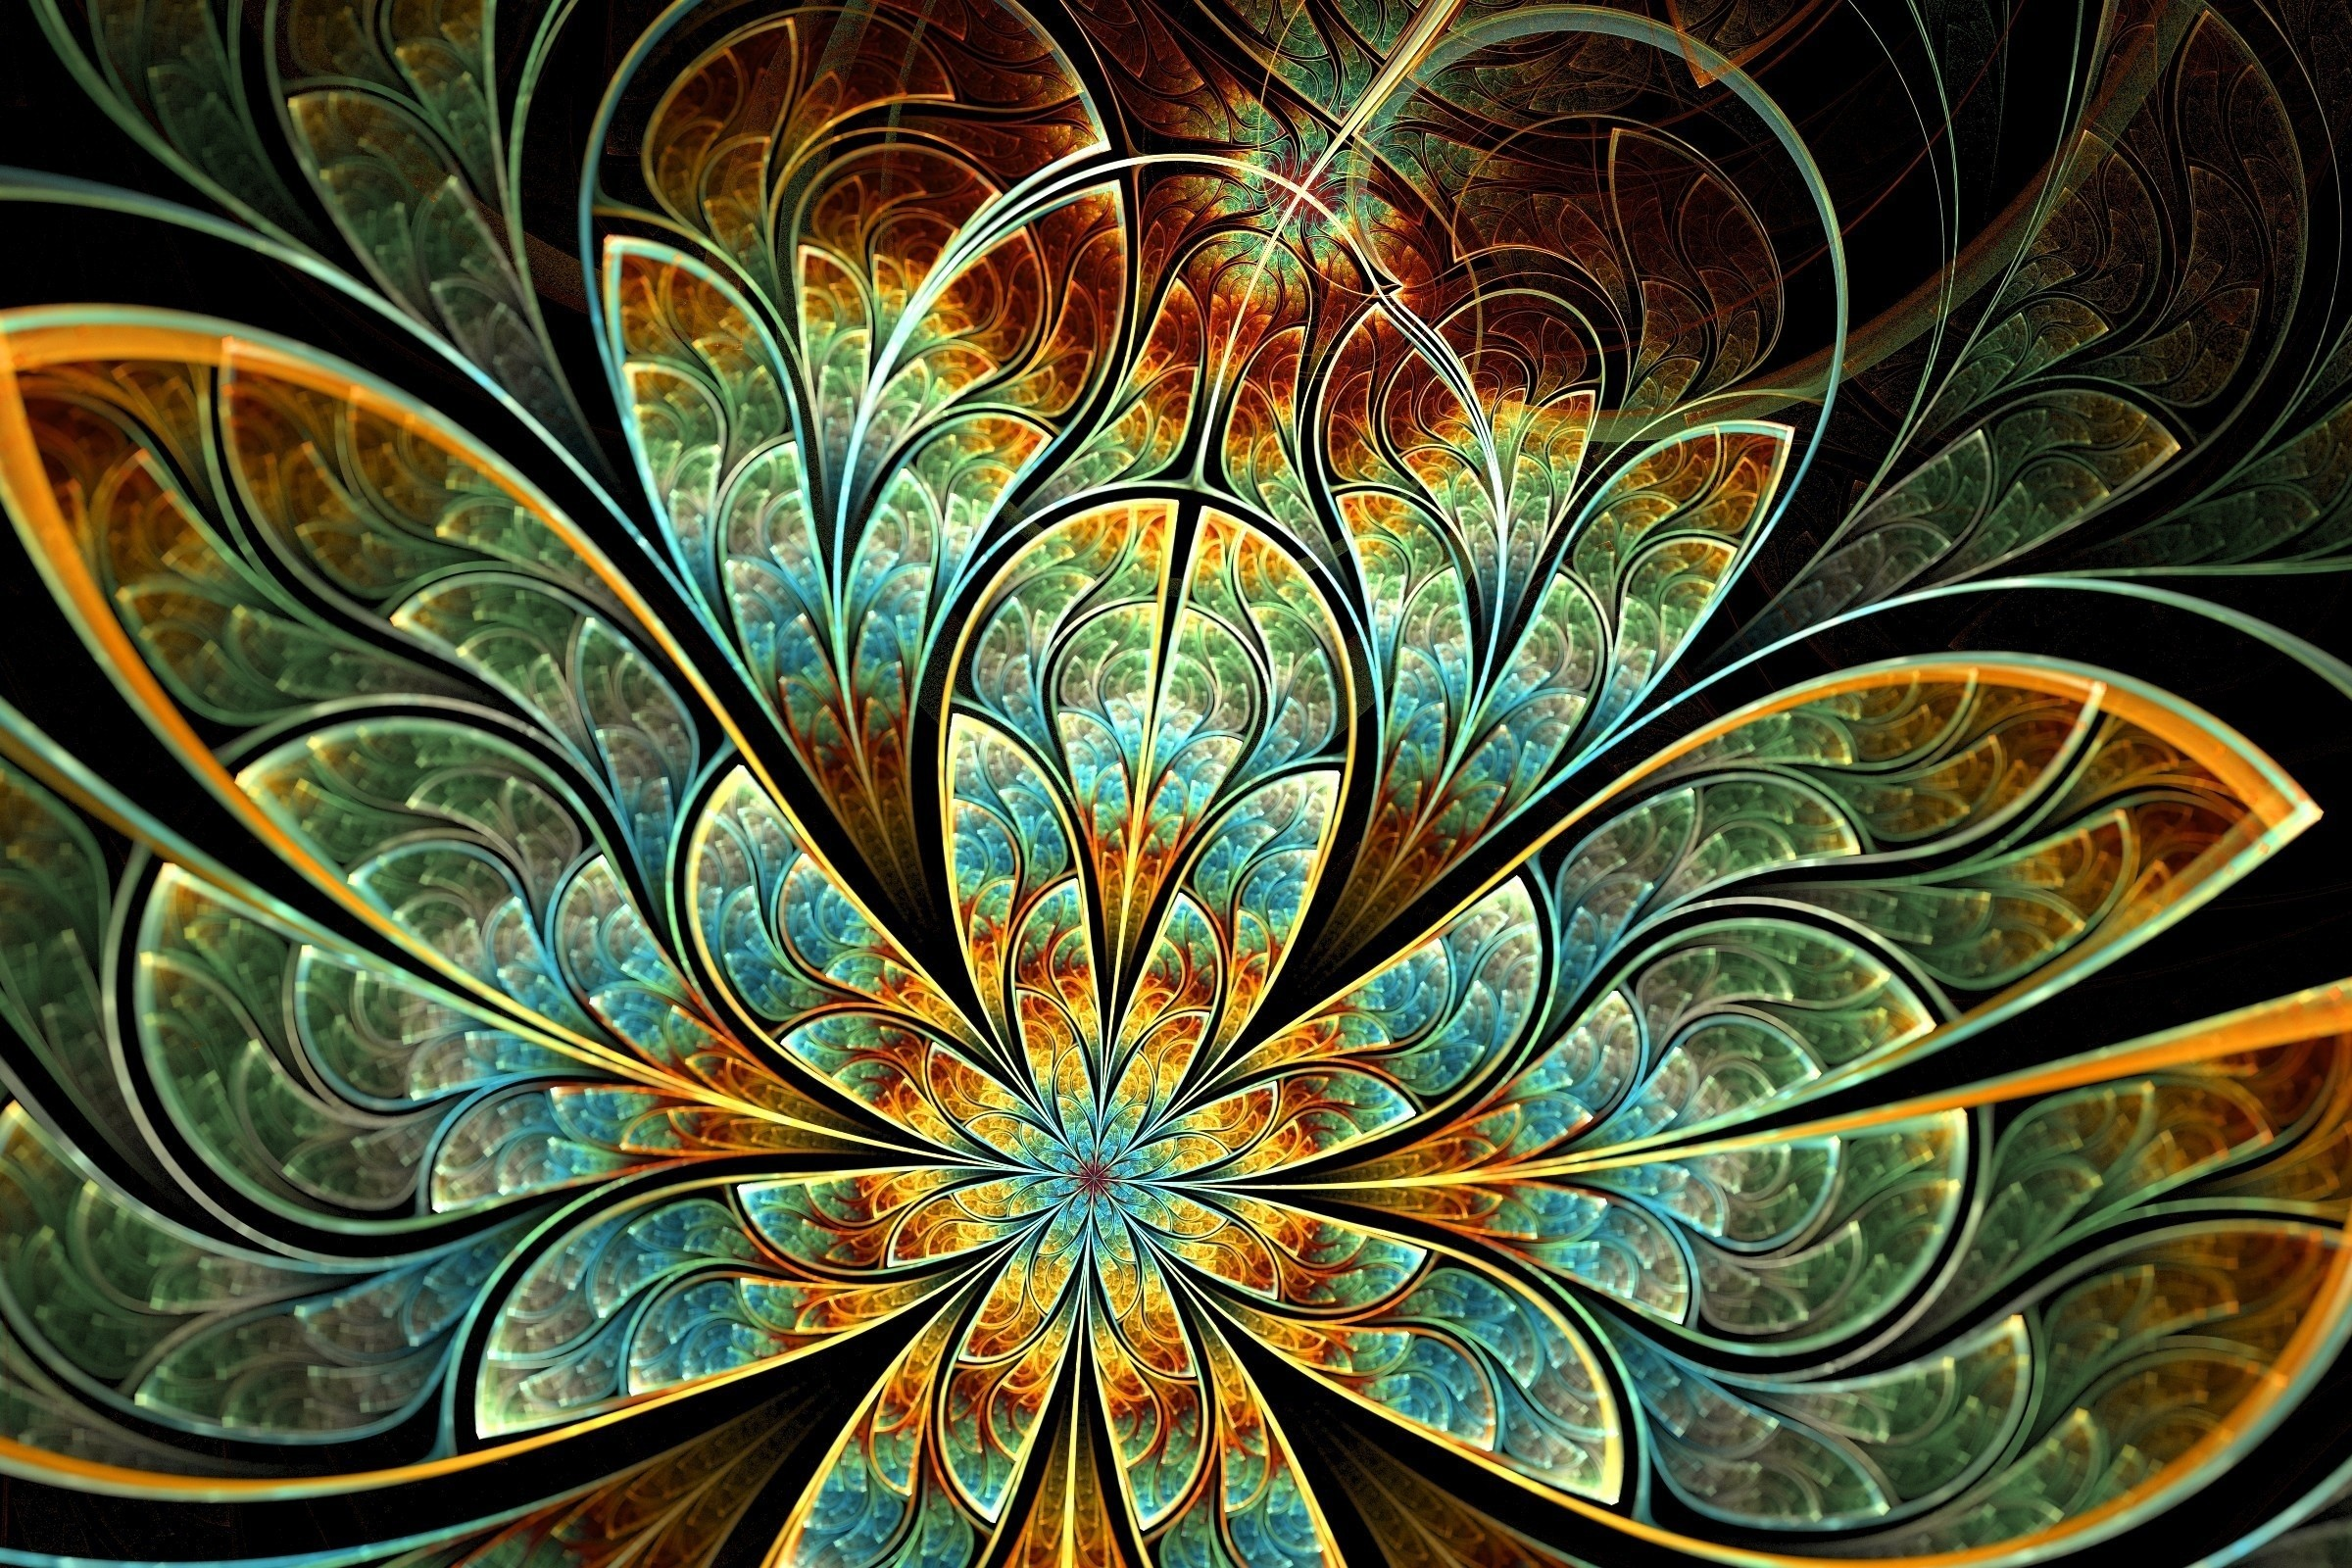 mandala wallpaper hd (69+ images)